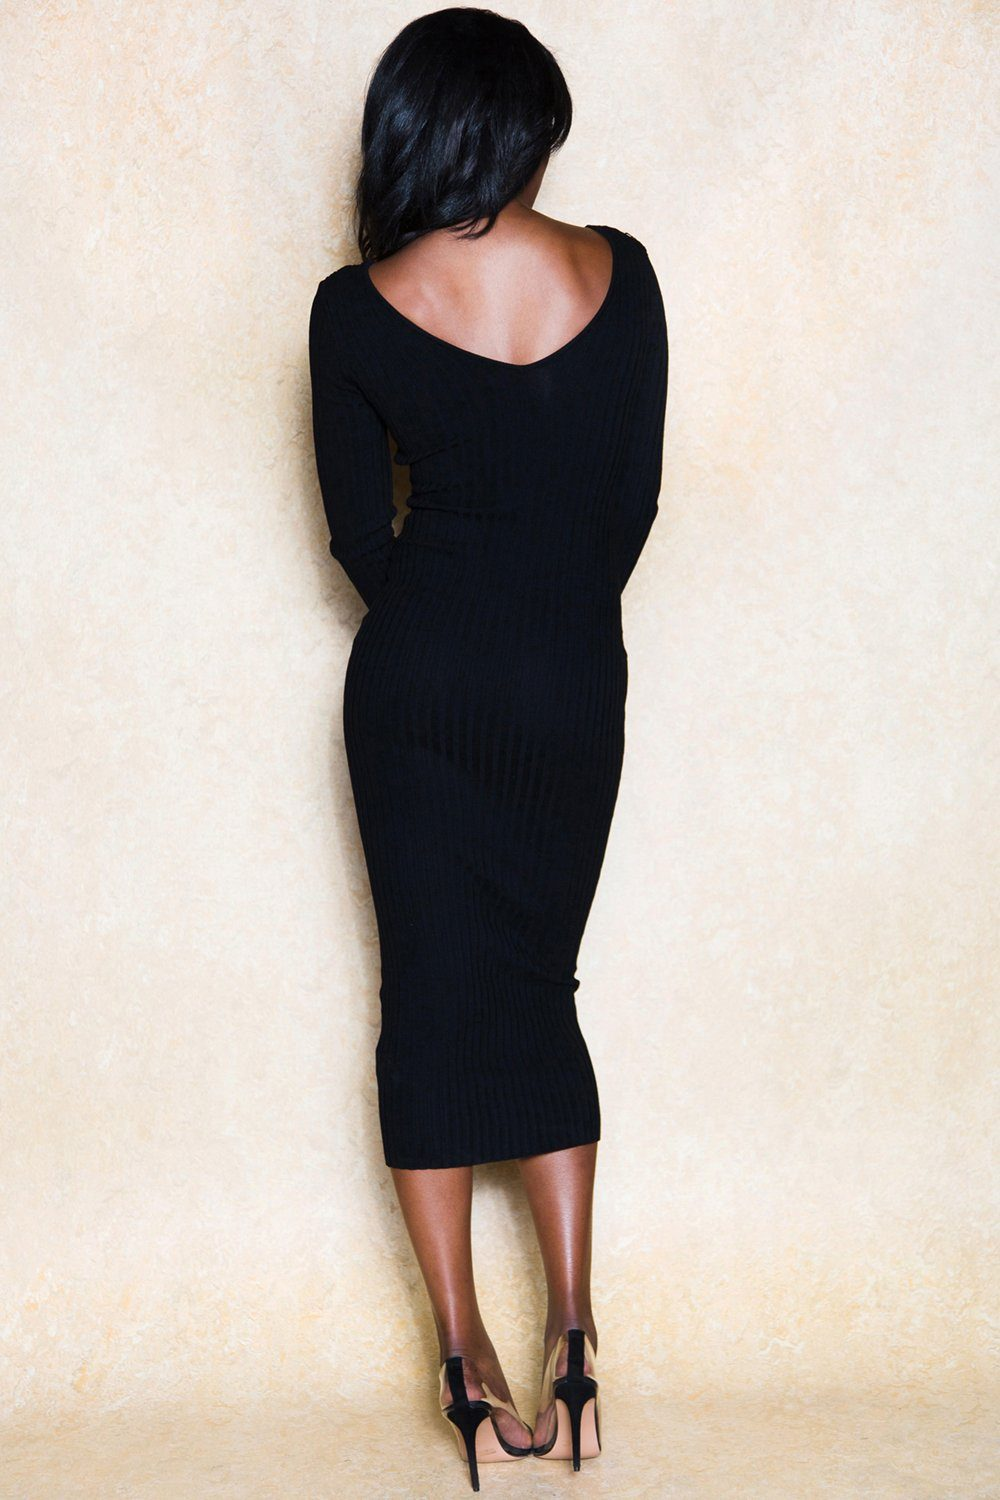 Make it Up to Me Single Strap Stretch Bodycon Midi Dress